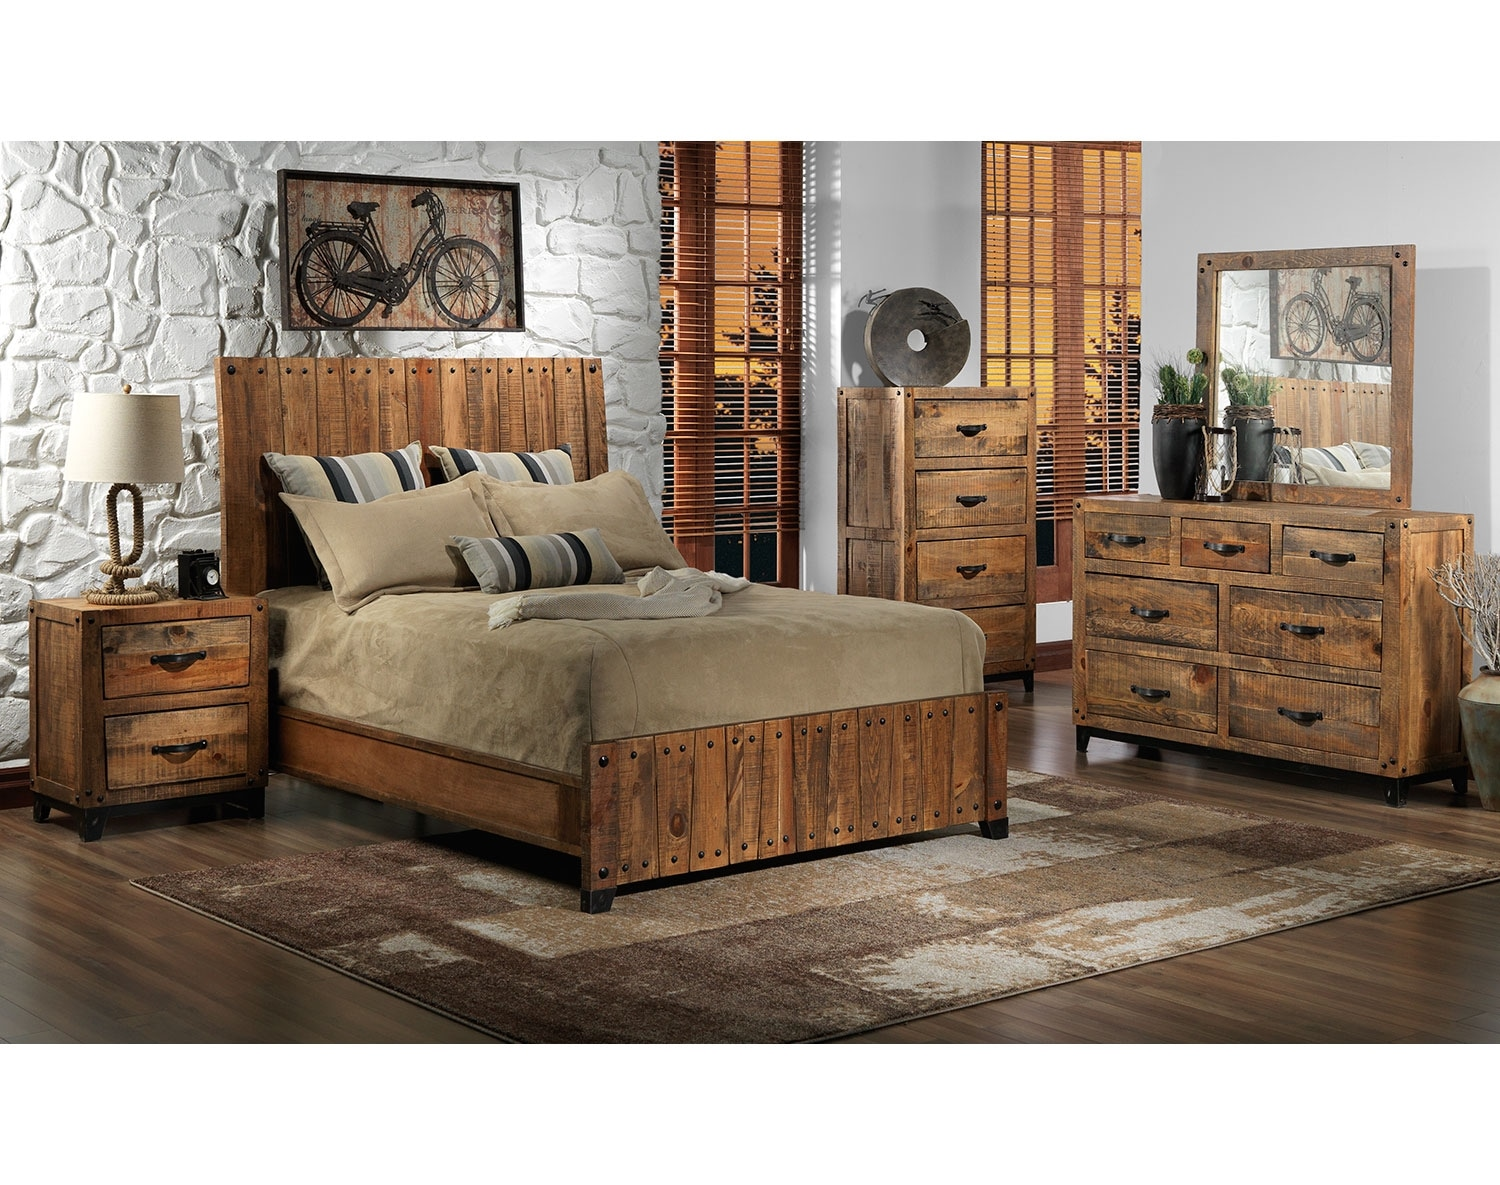 The Maya Collection - Rustic Pine